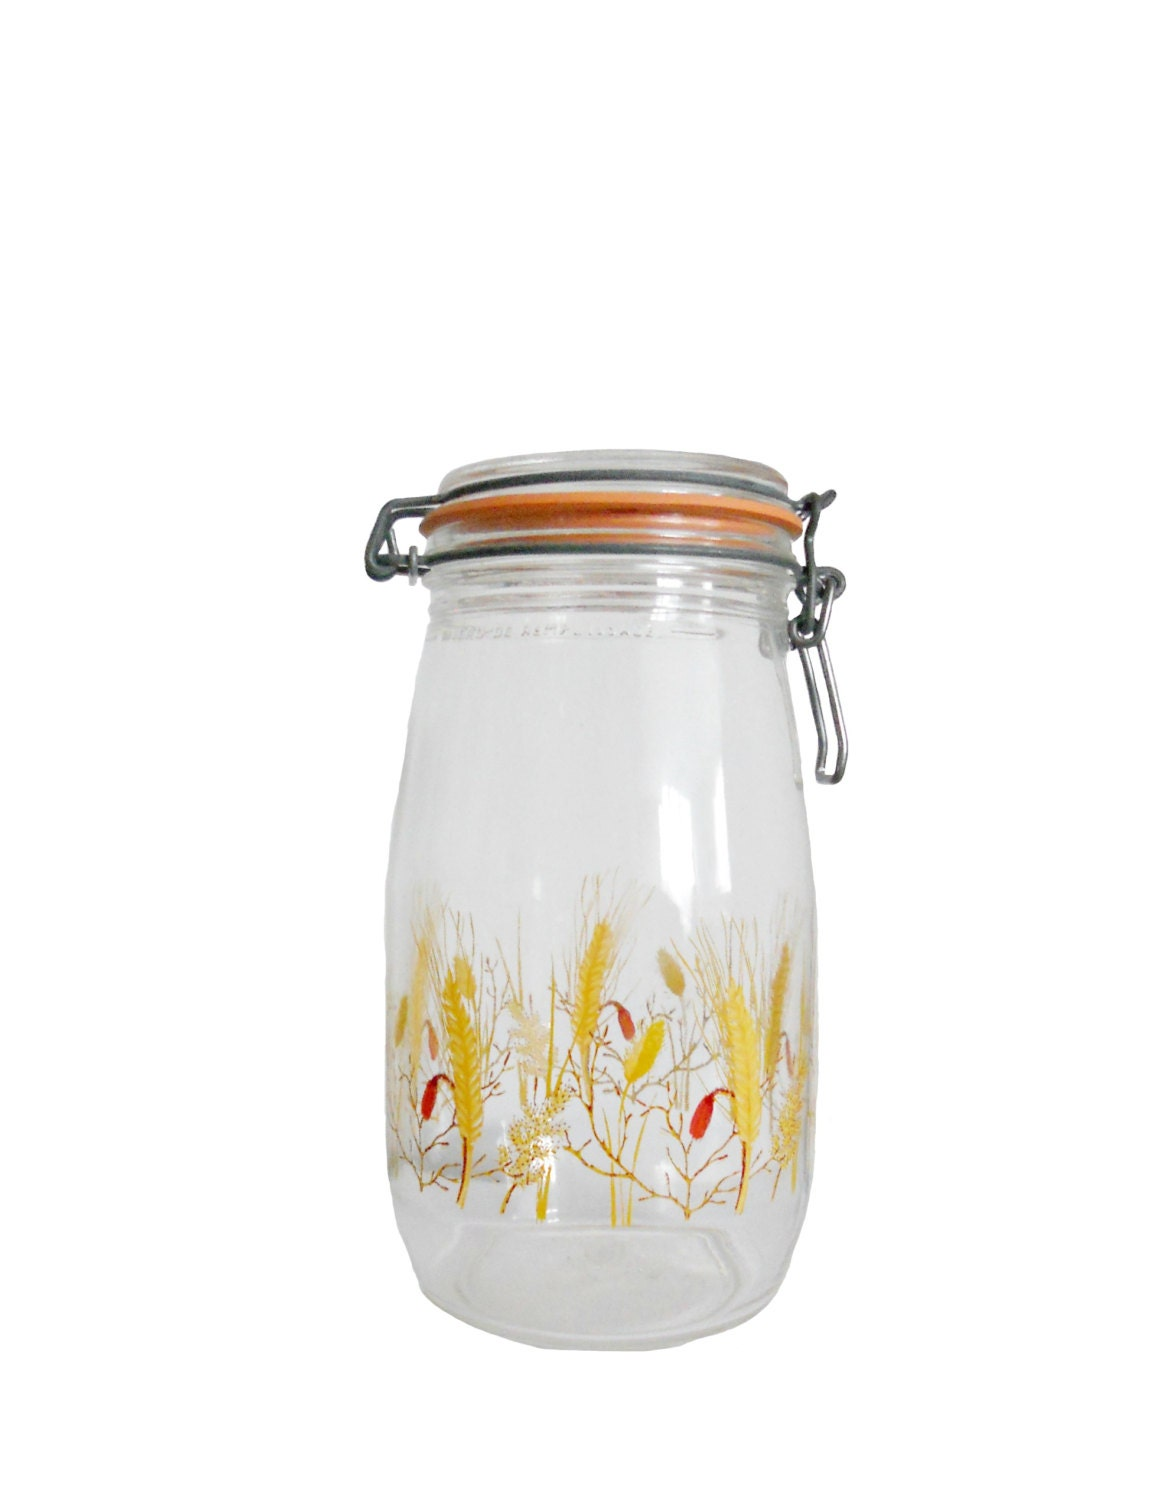 vintage kitchen canisters french glass wheat by french red amp white kitchen canister set chairish